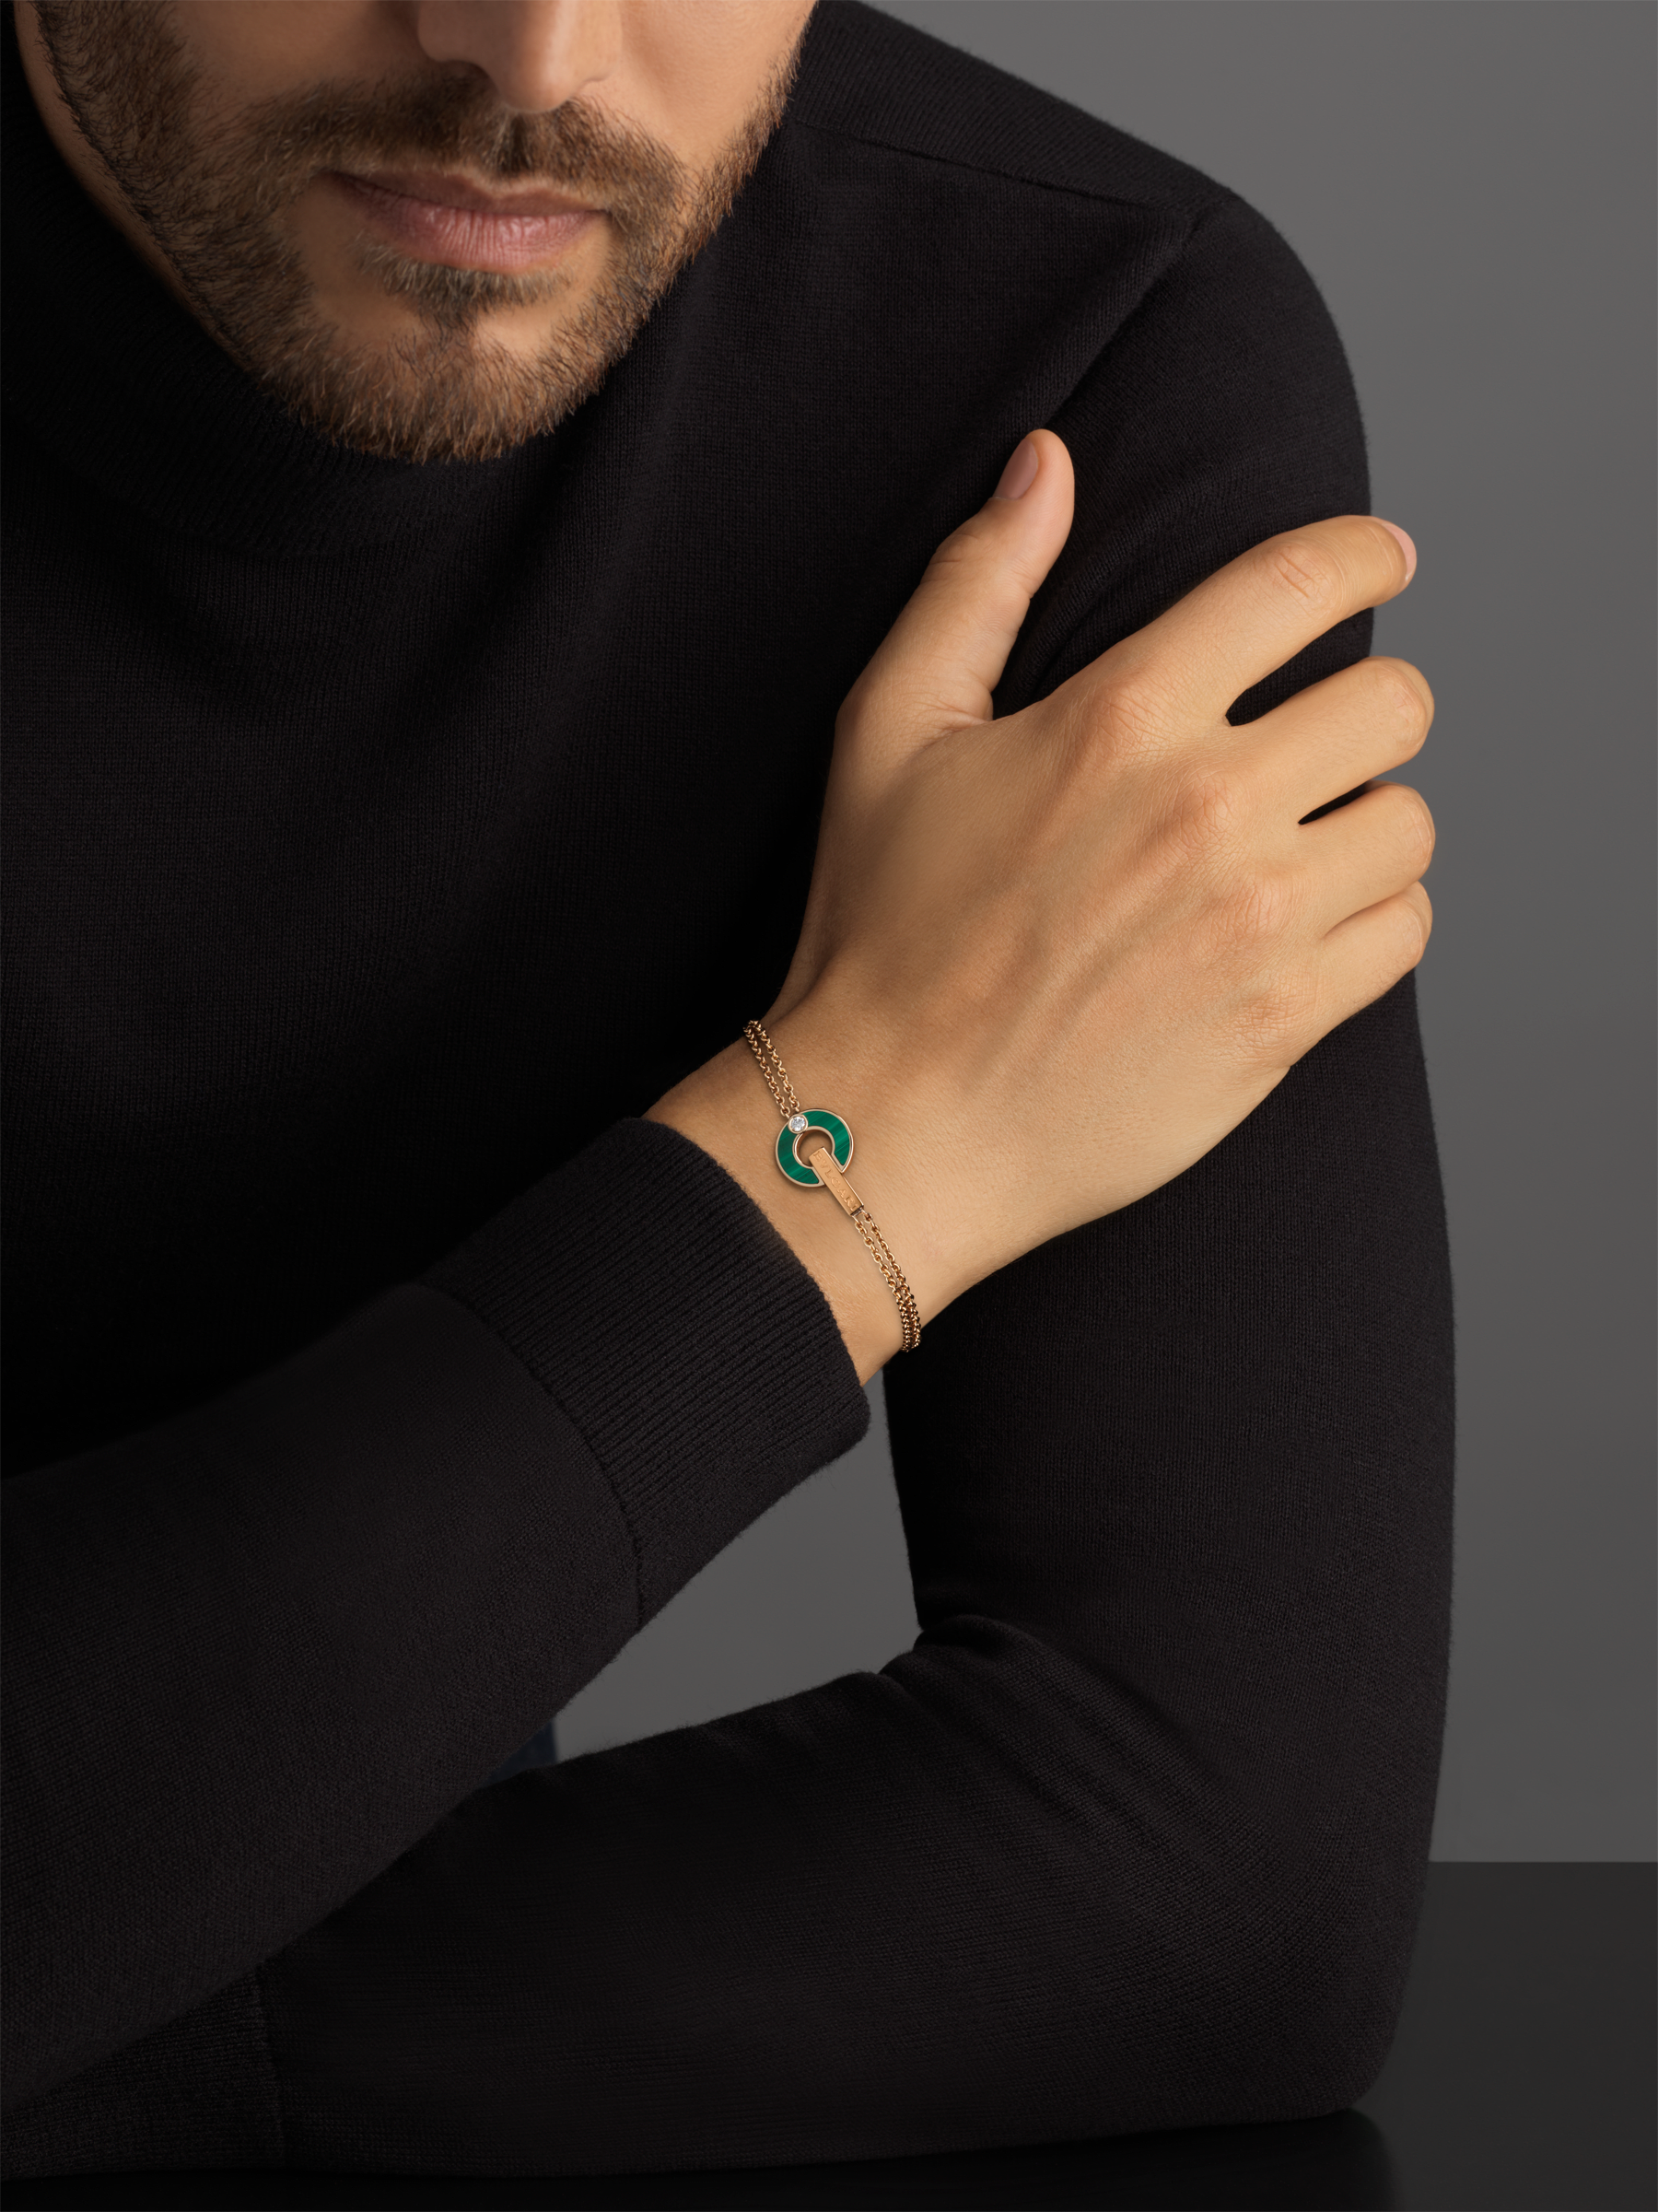 BVLGARI BVLGARI Openwork 18 kt rose gold bracelet set with malachite elements and a round brilliant-cut diamond BR858958 image 4